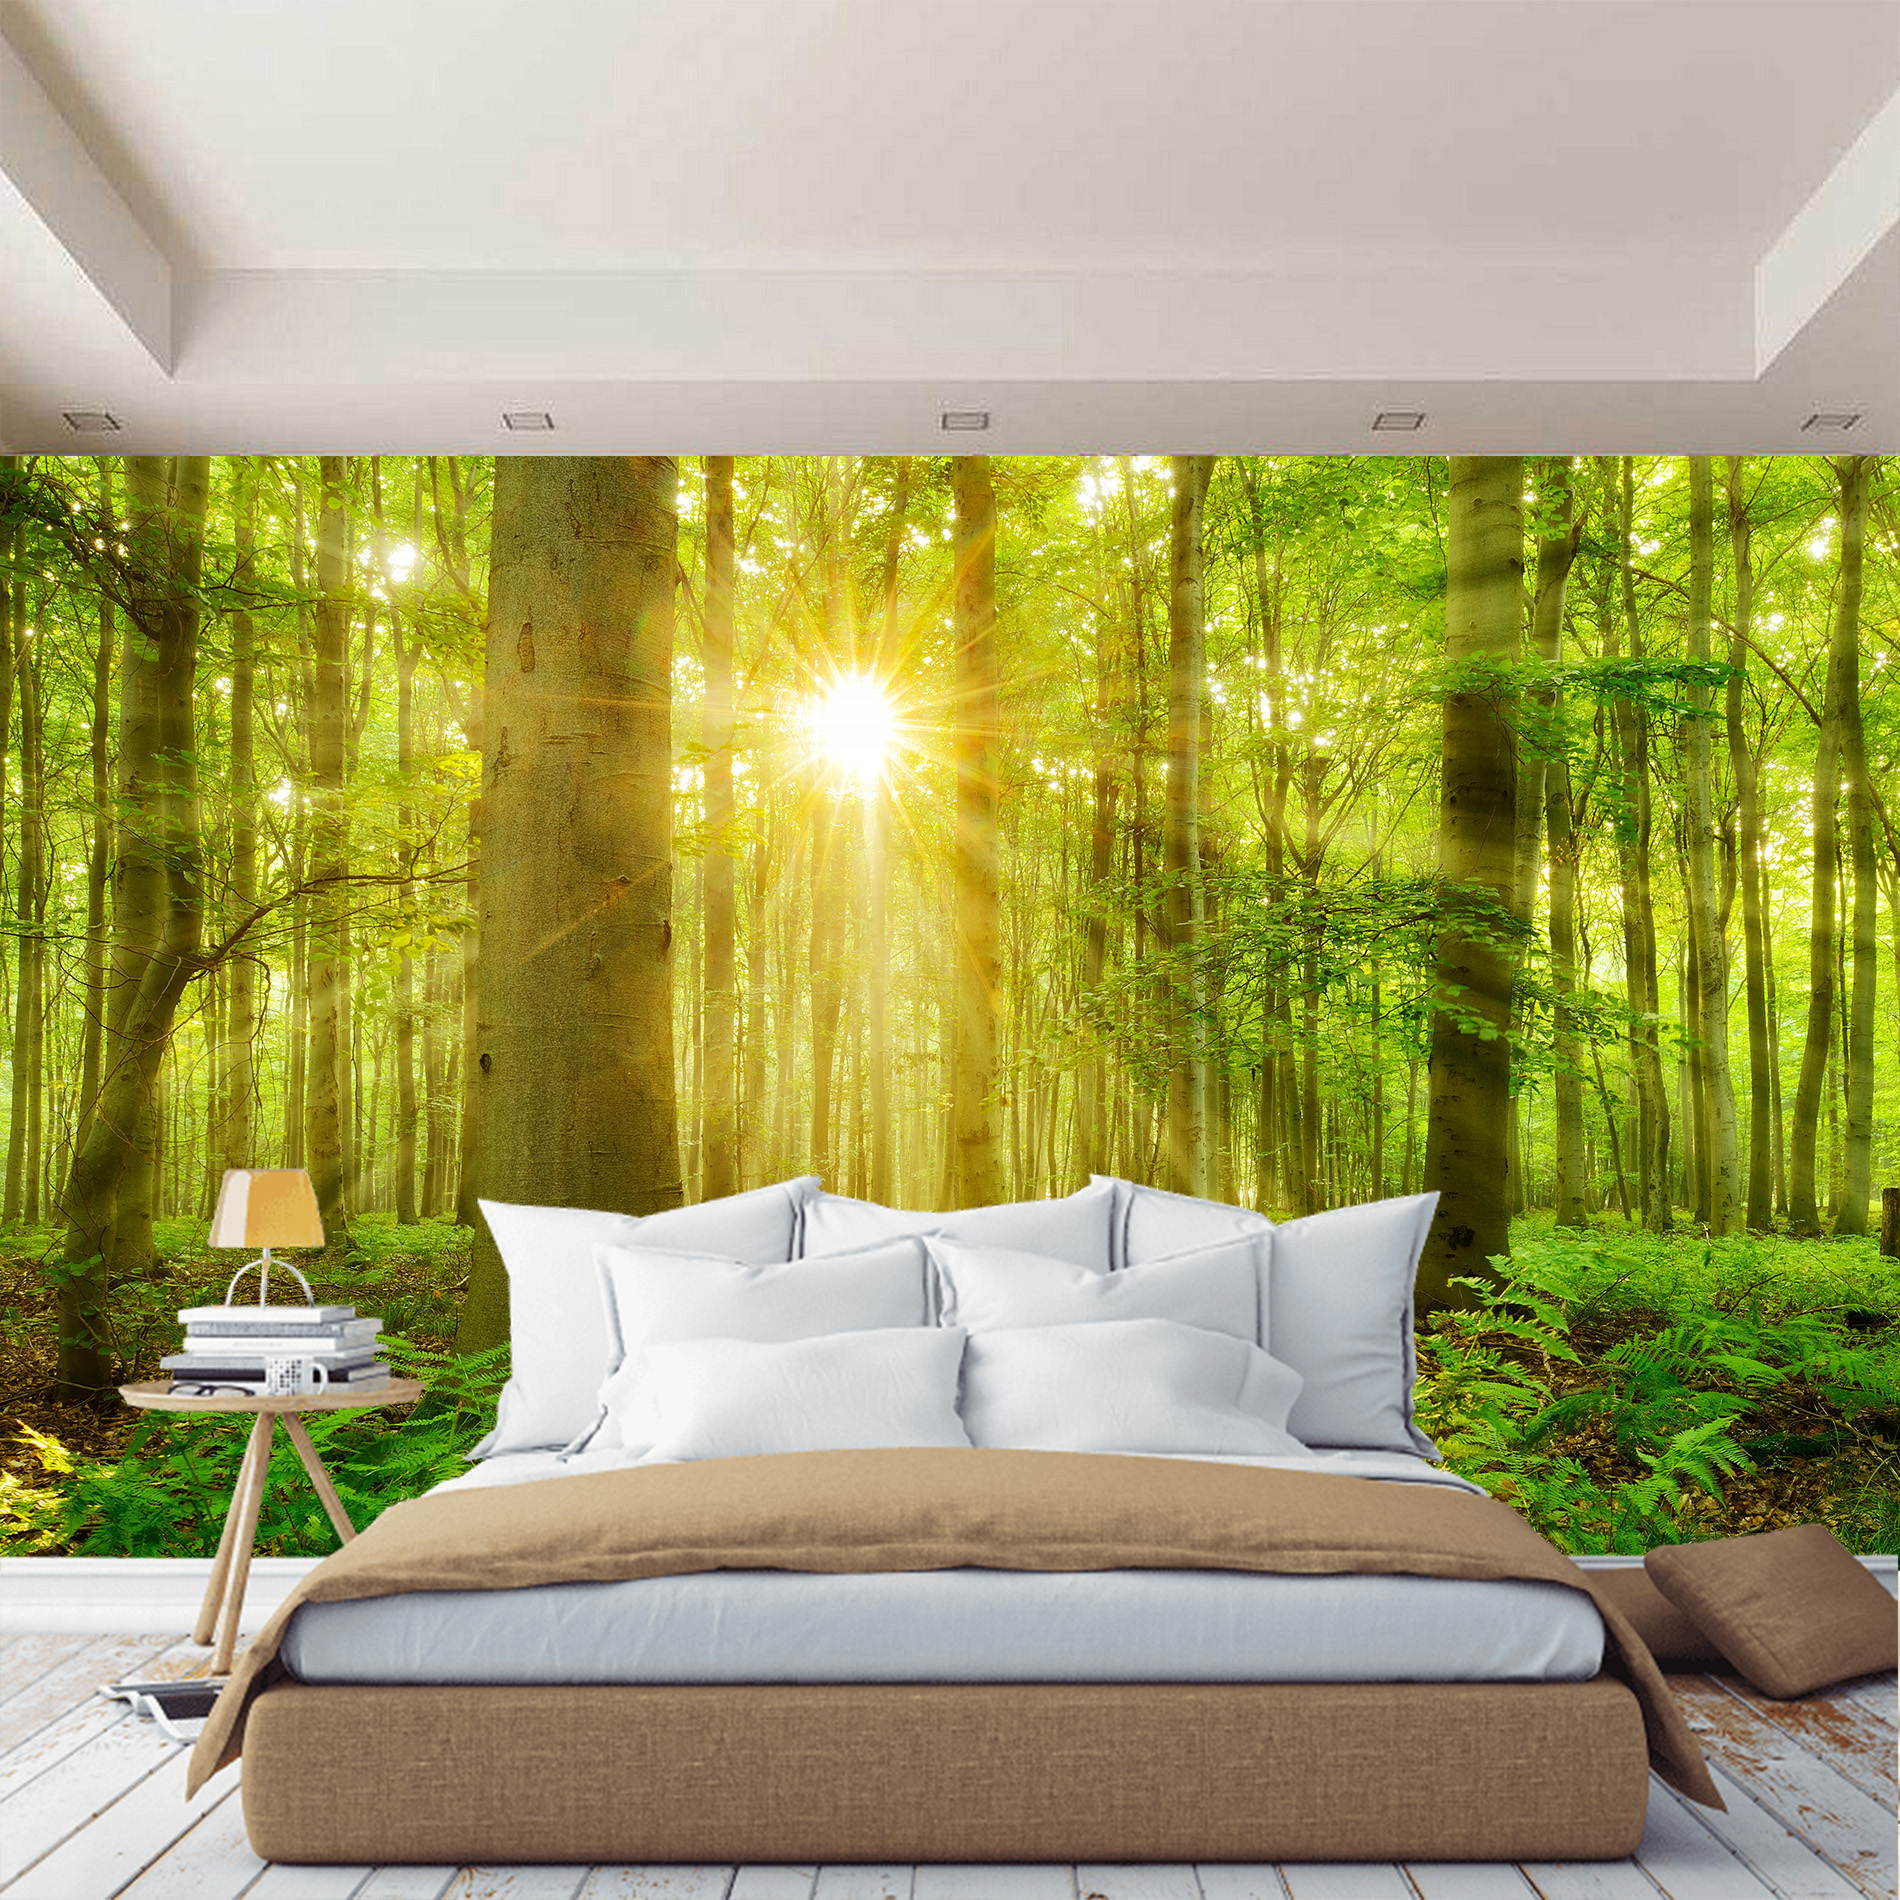 Forest 3D Photo Wallpaper On The Wall Trees, Grass, Sun, Wallpaper For Hall, Kitchen, Bedroom, Wall Mural Expanding Space